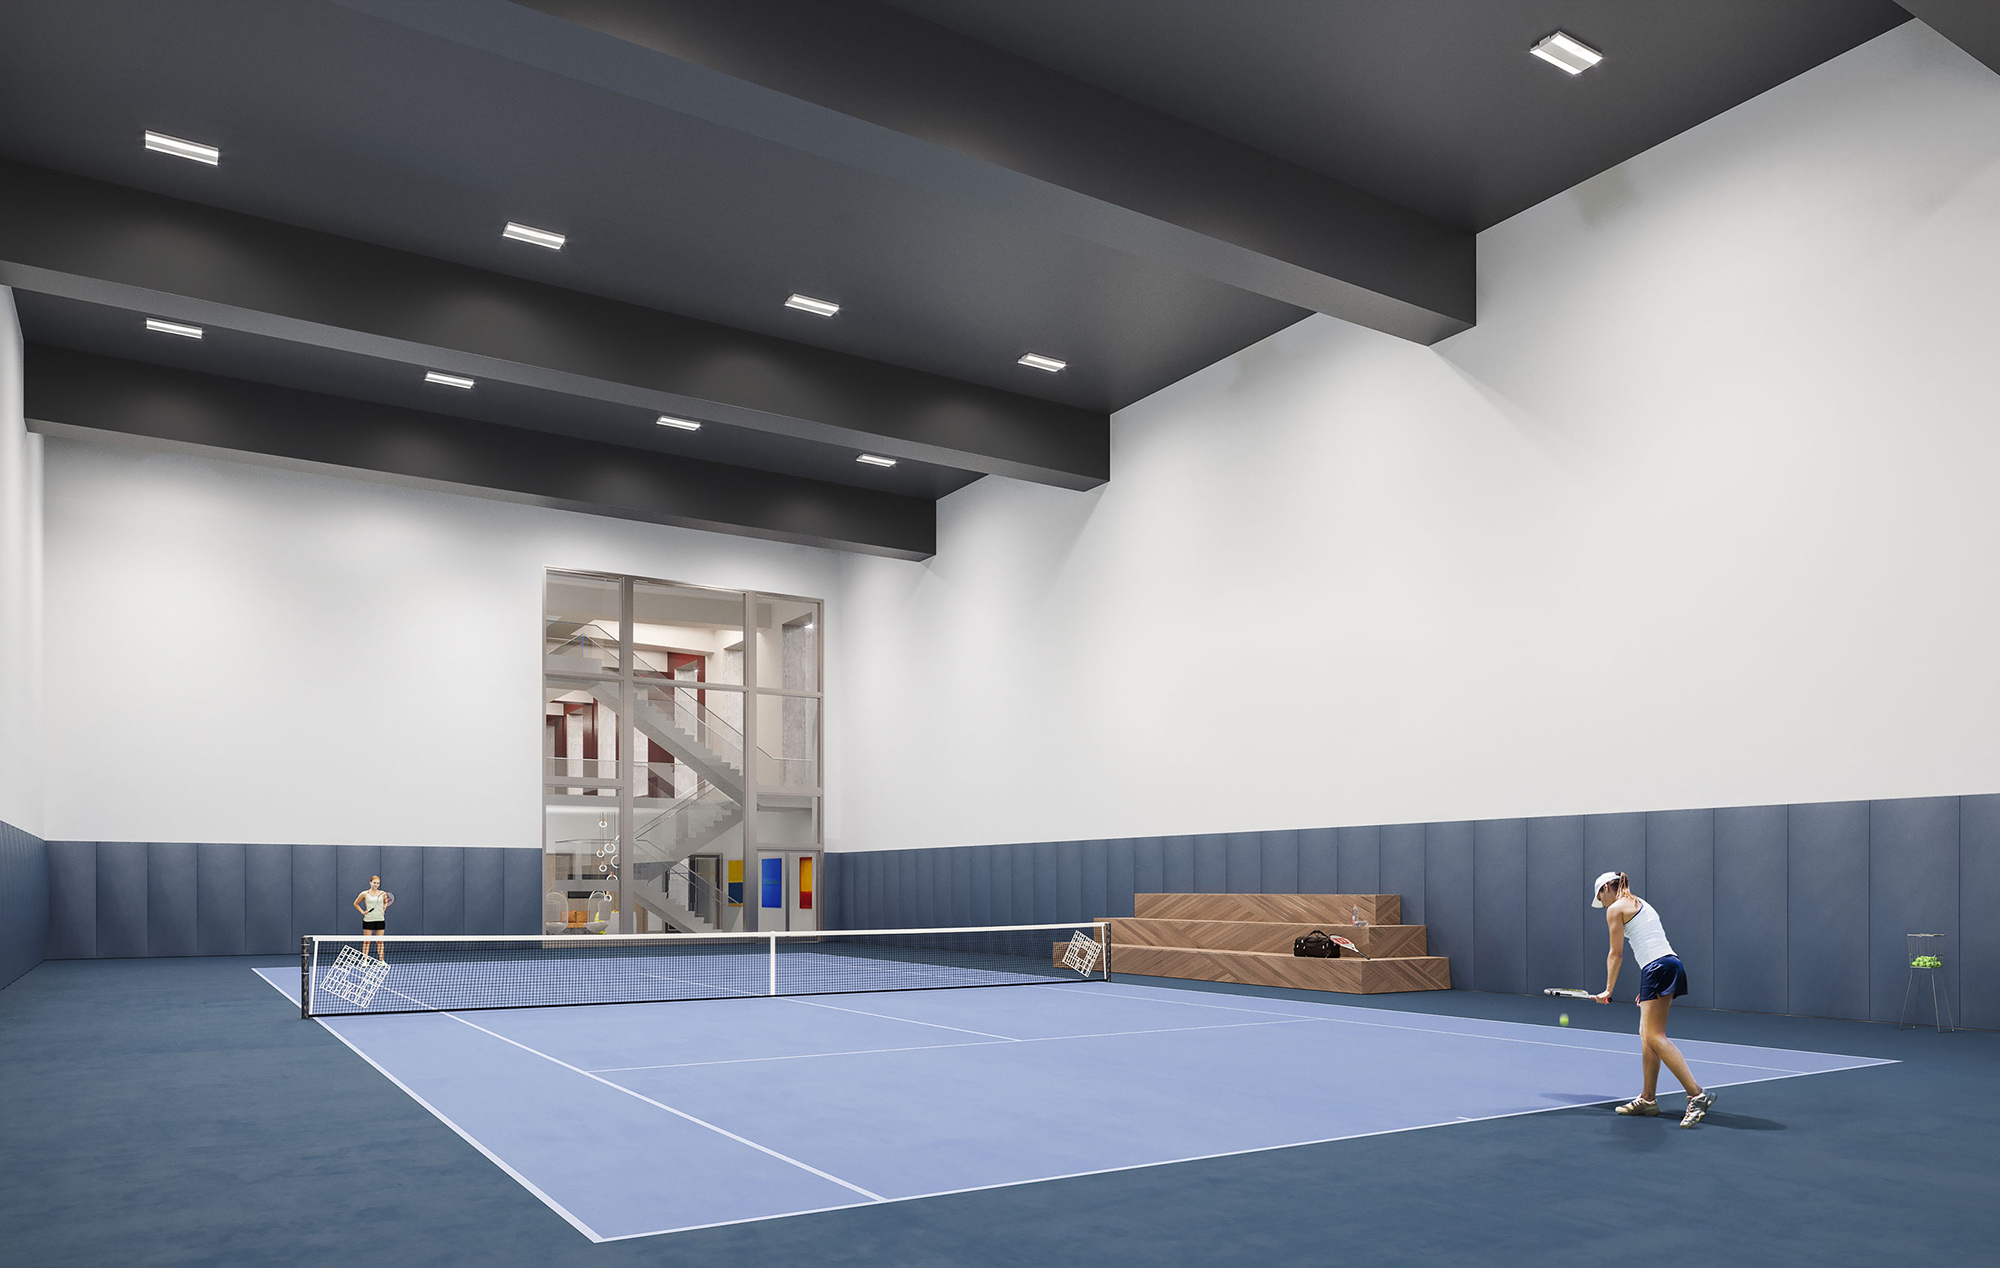 Upscale New York Condos With An Indoor Tennis Court